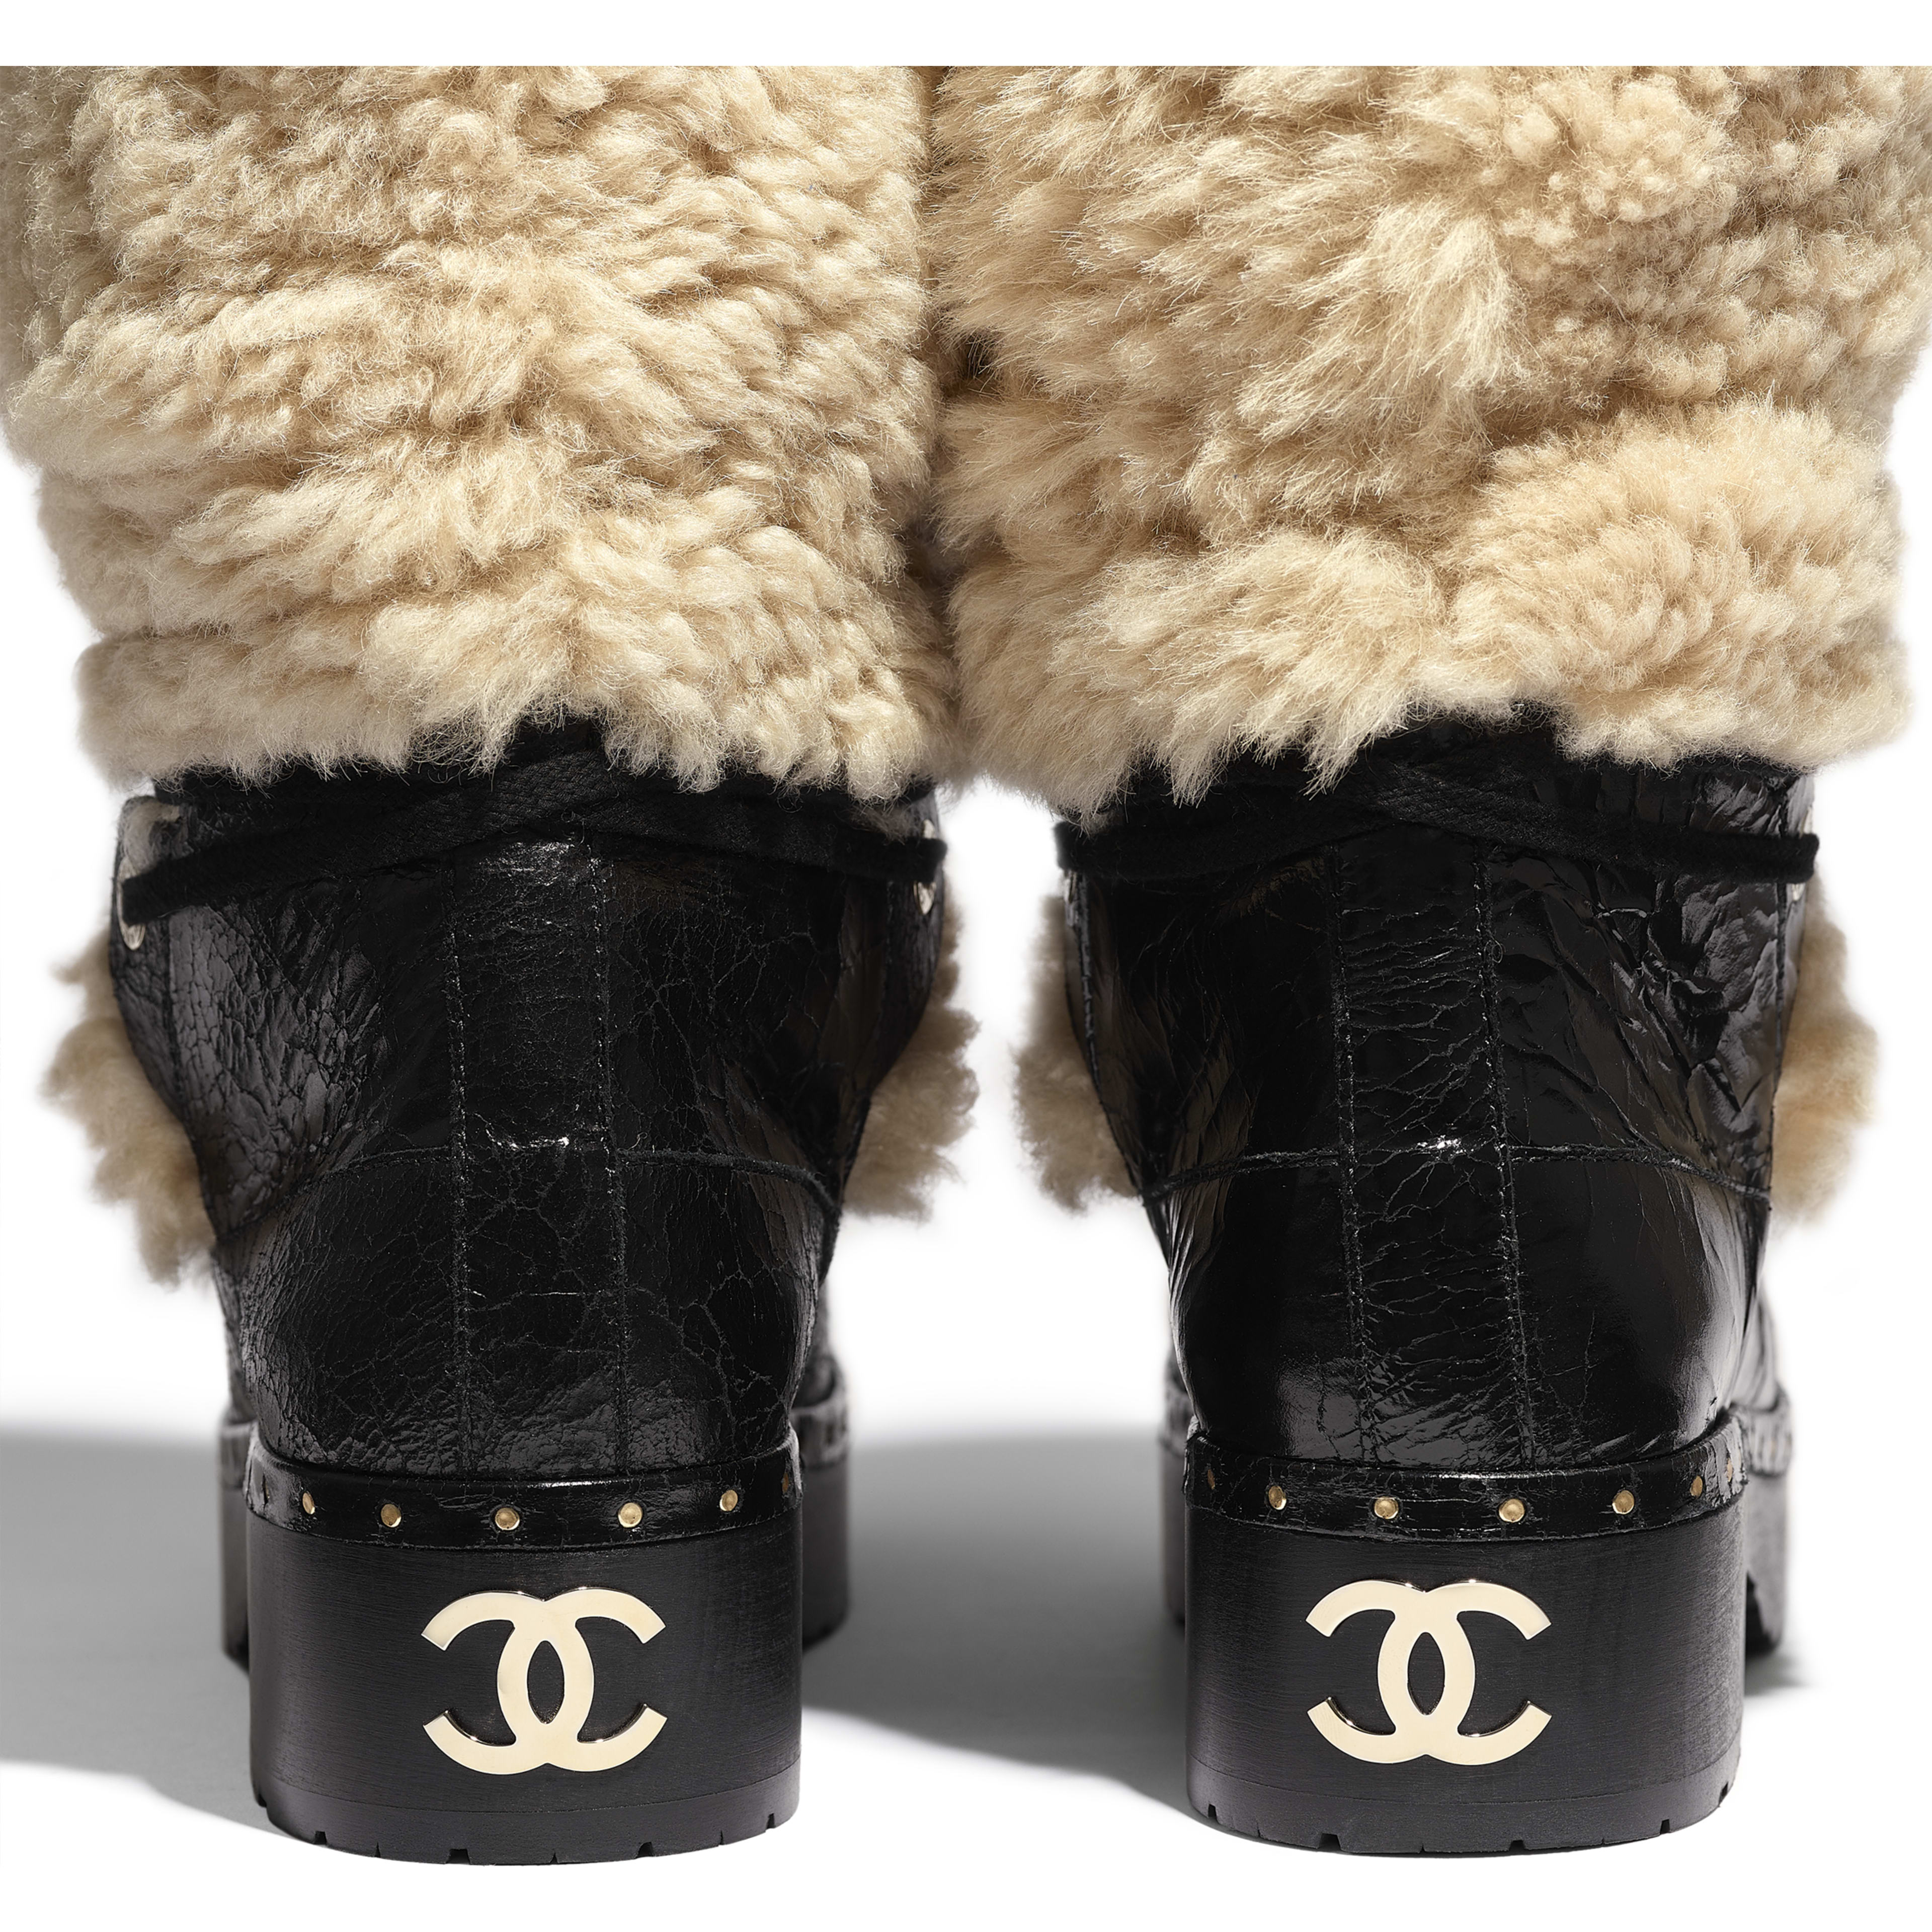 High Boots - Beige & Black - Shearling & Crackled Sheepskin - Extra view - see full sized version